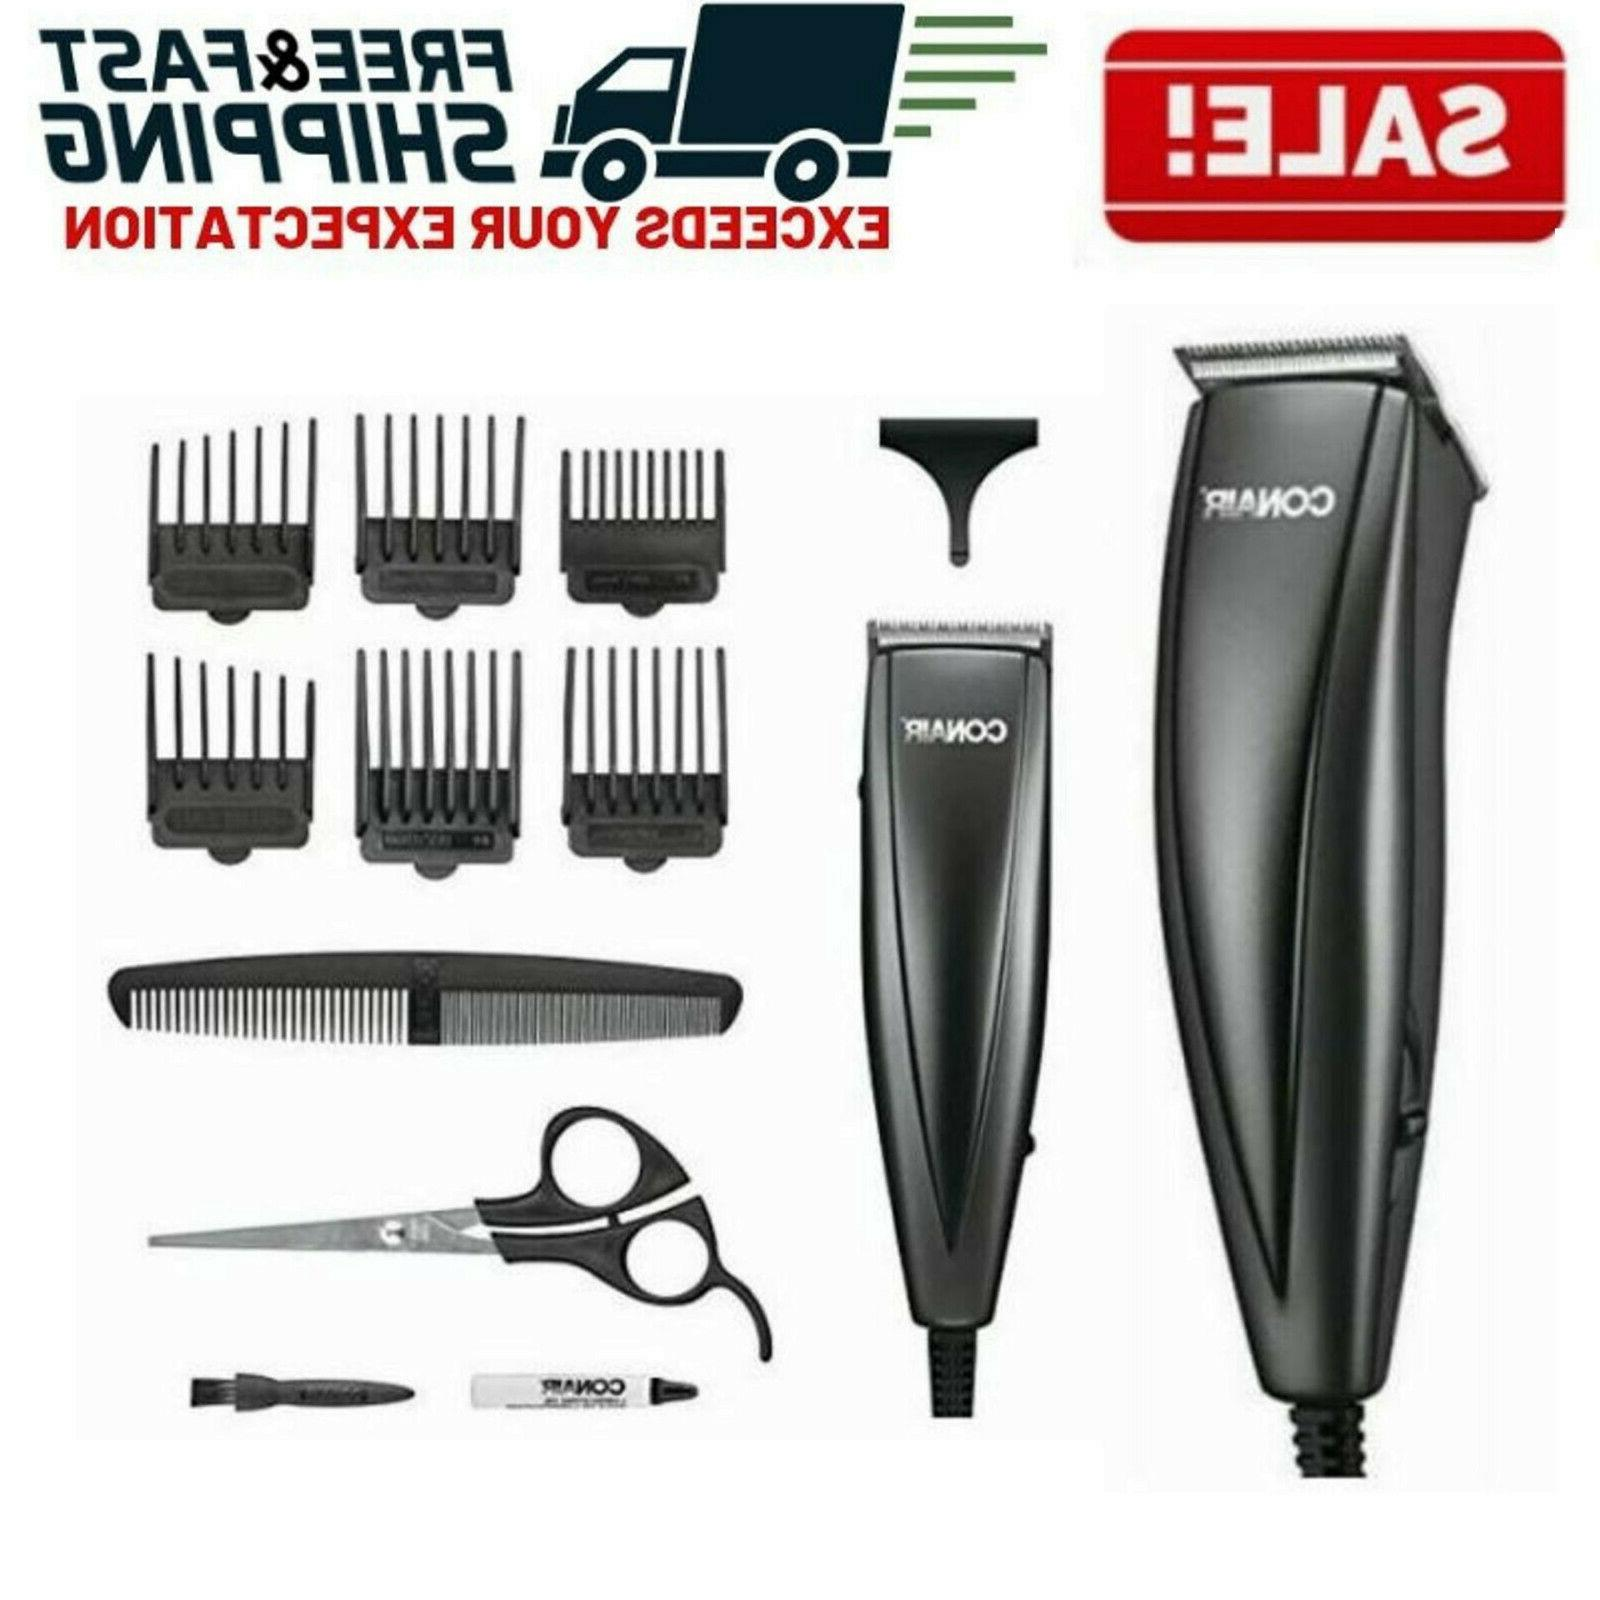 mens professional hair clippers trimmer machine kit